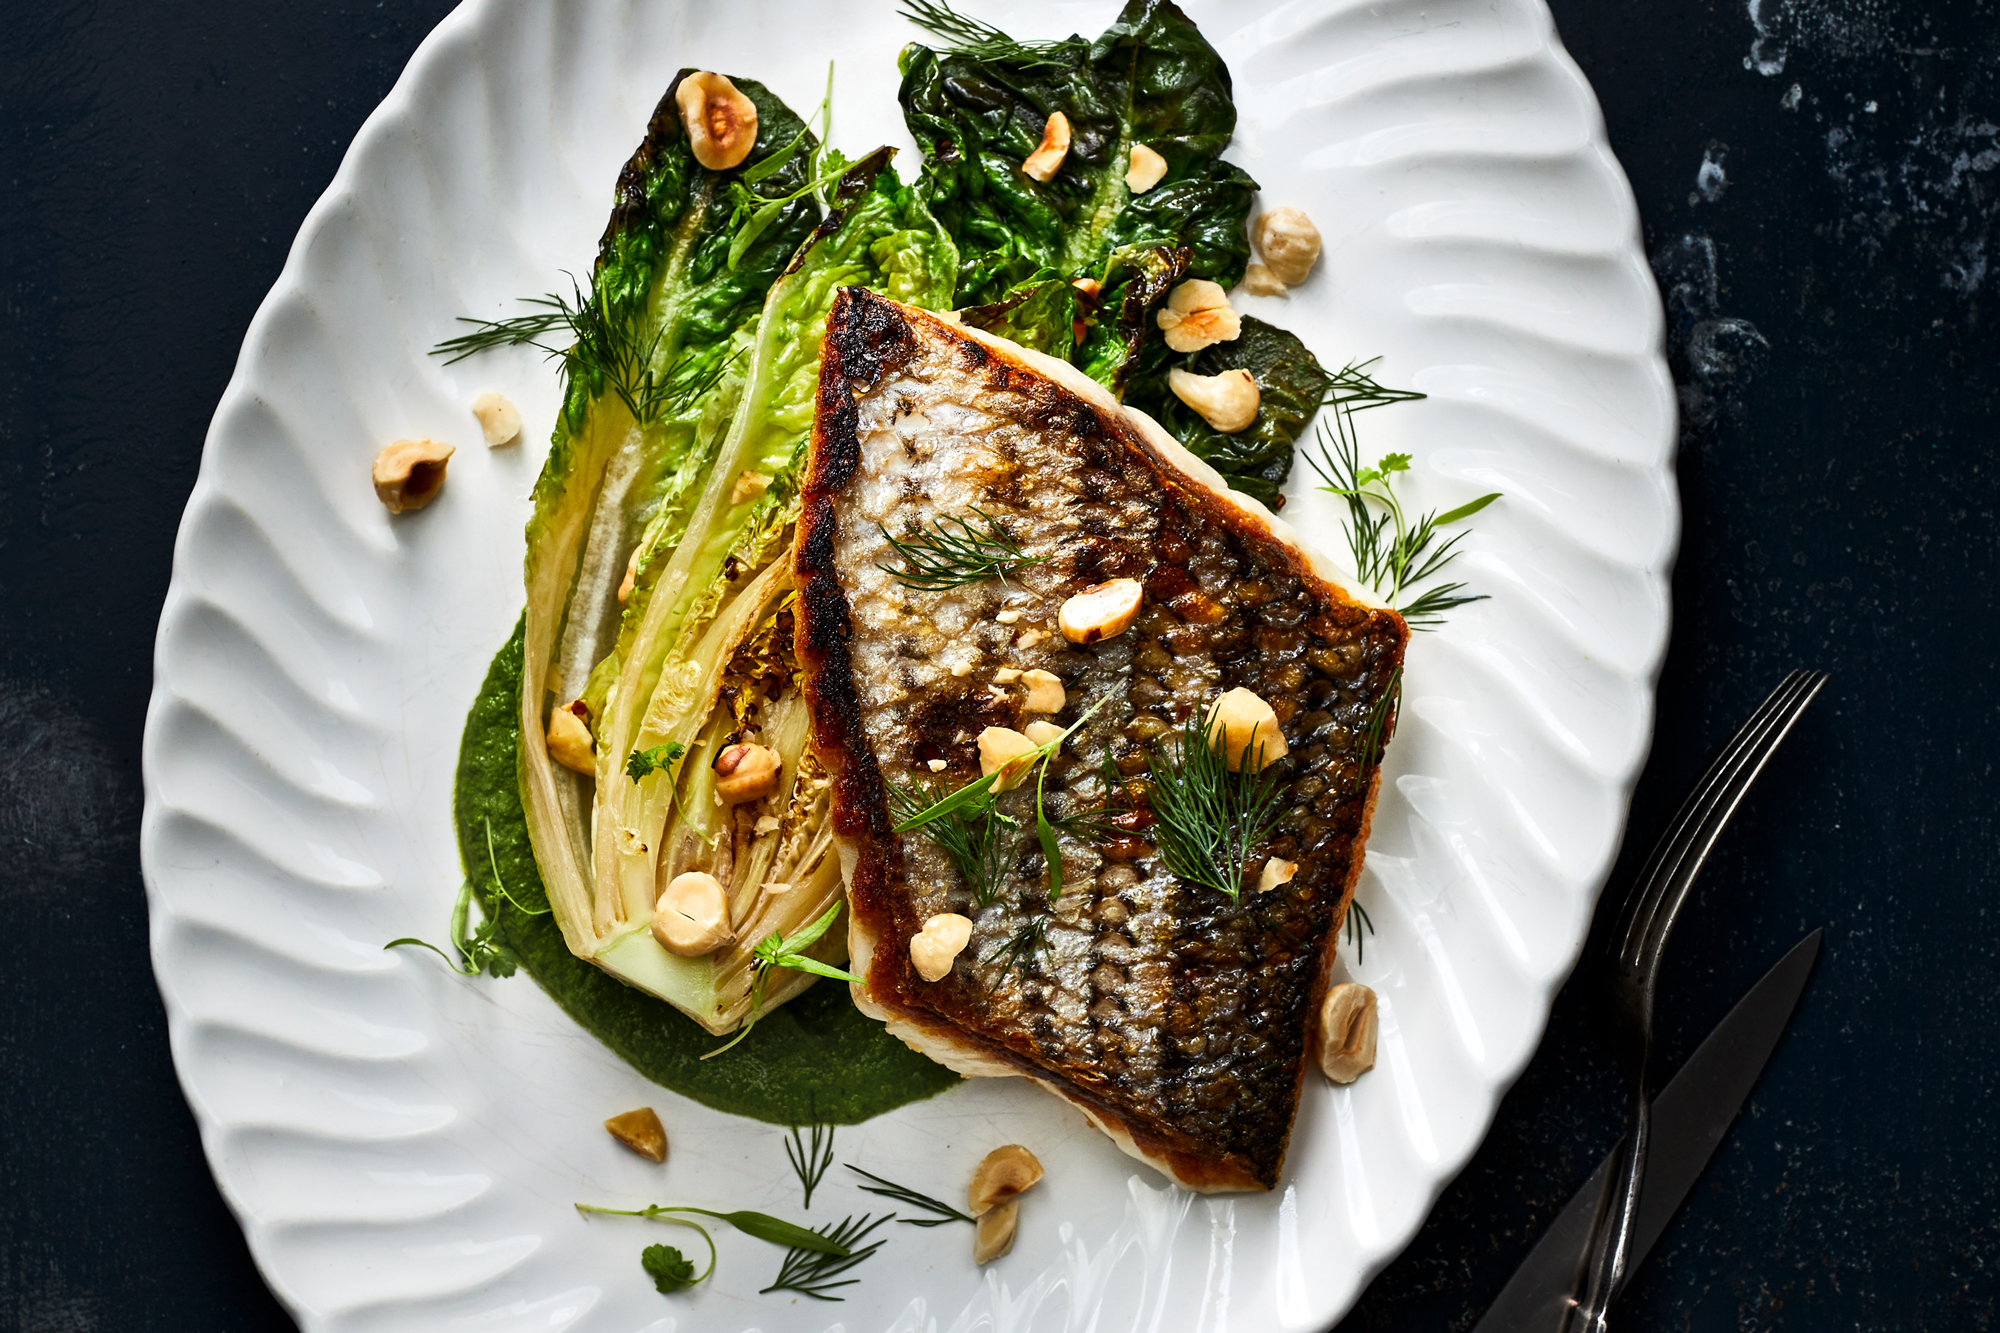 Crispy-Skinned Bass with Braised Lettuce and Green Goddess Dressing